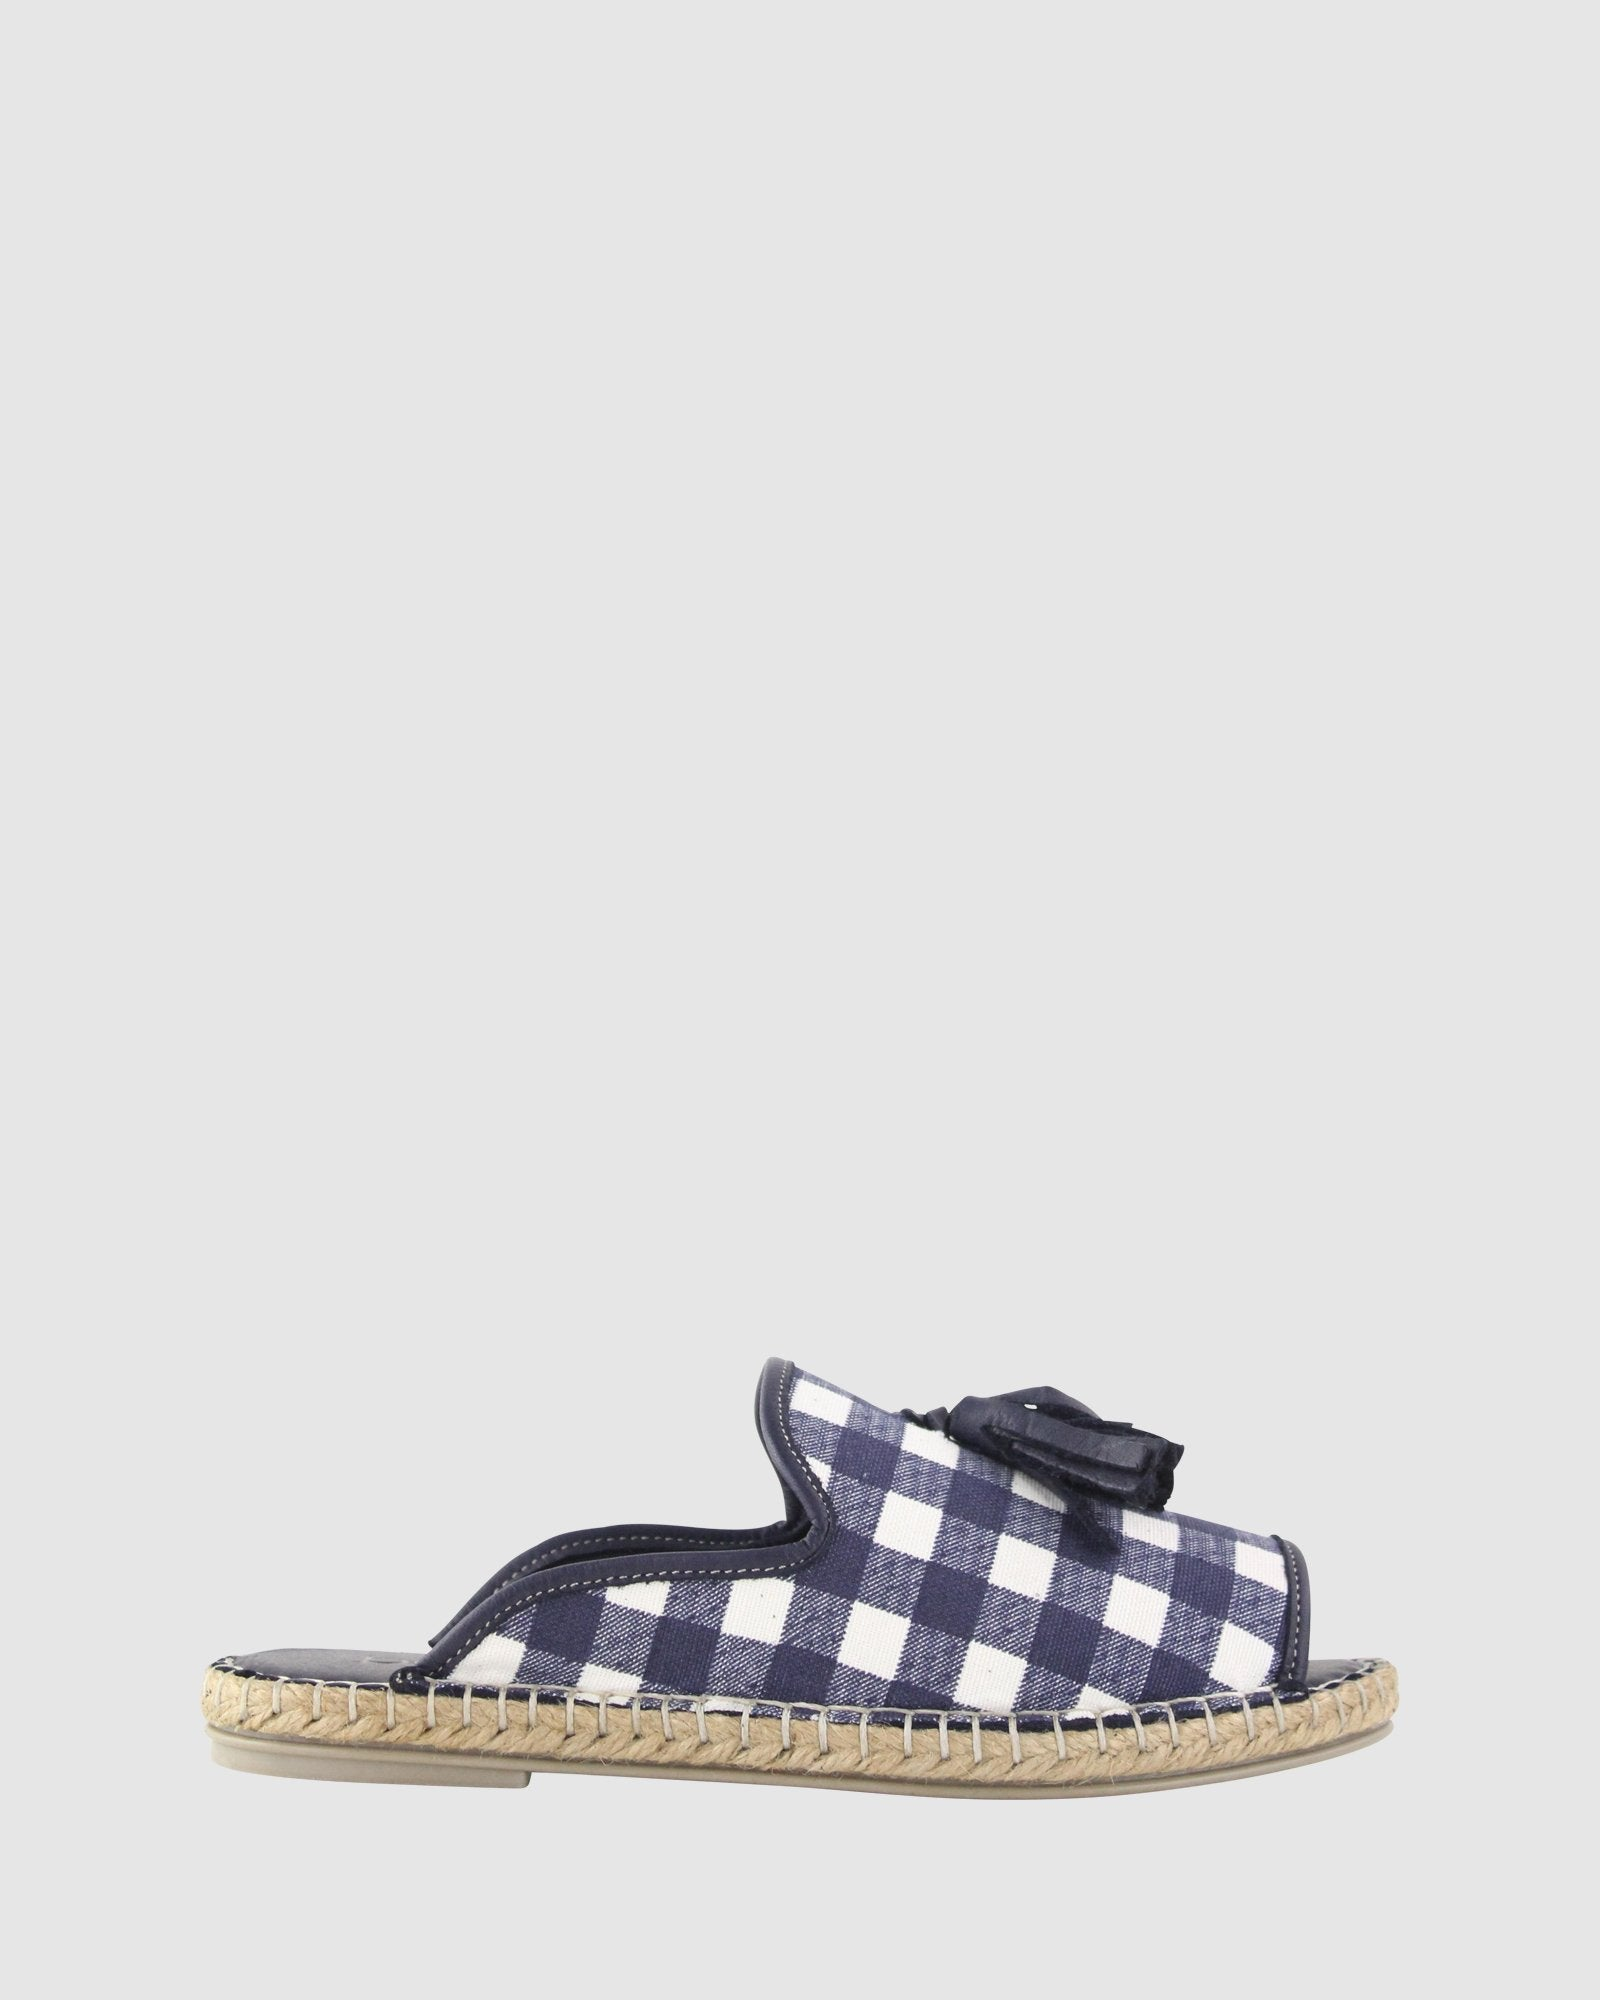 Kind Slide in Navy Gingham